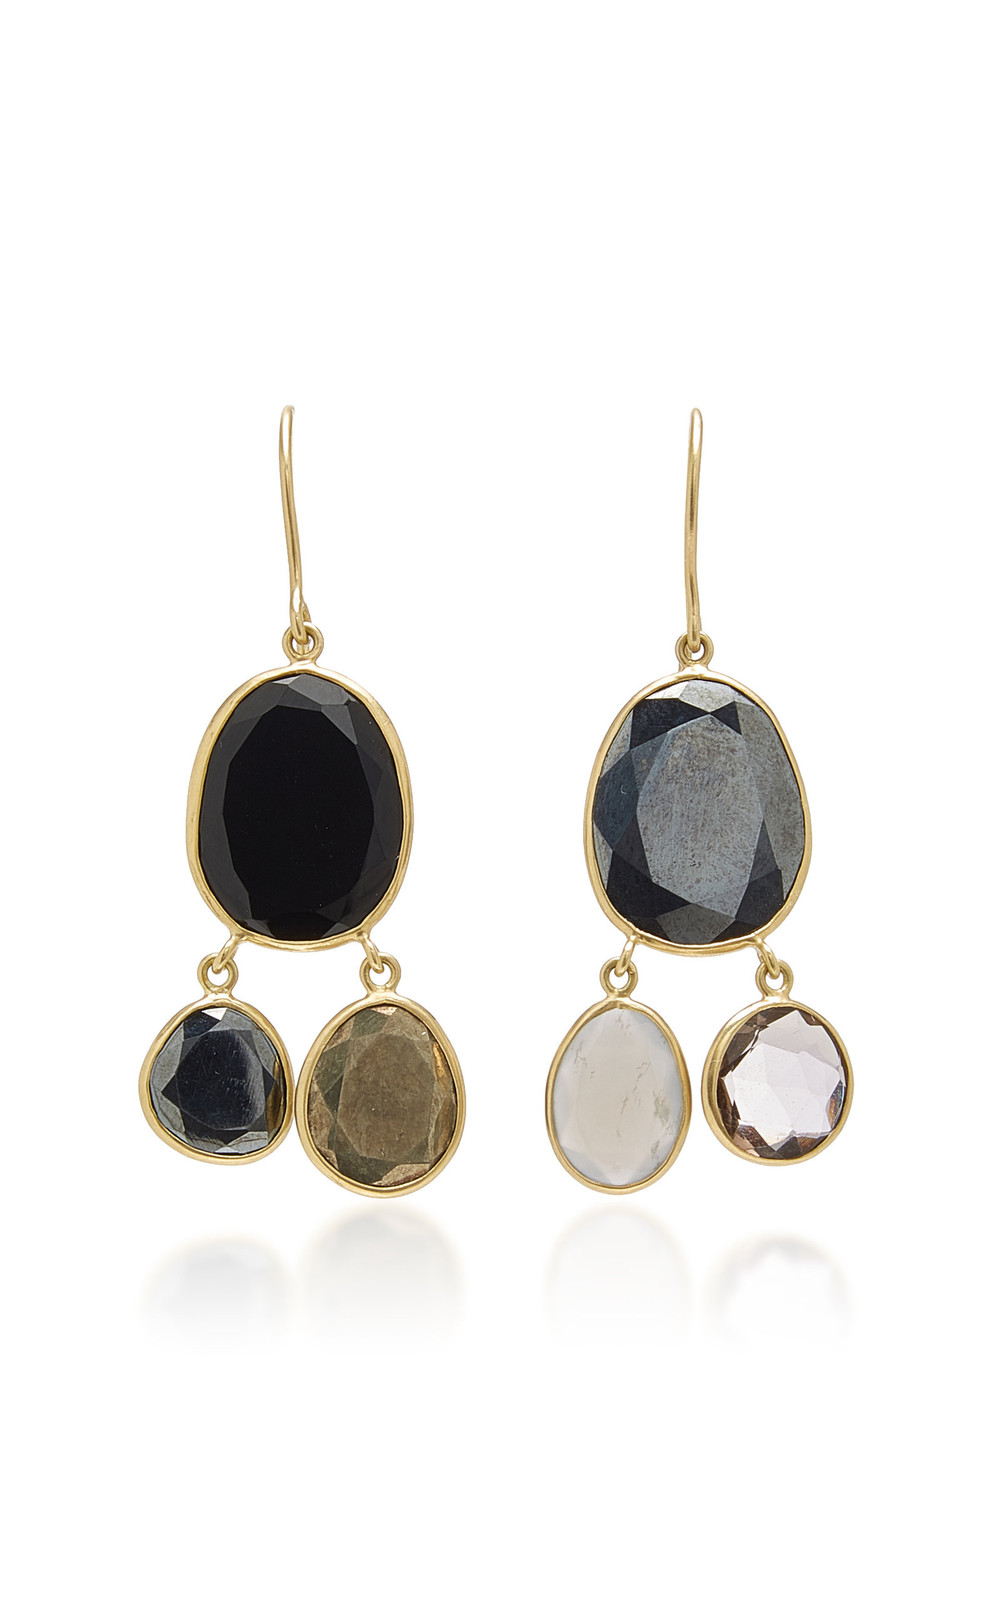 Pippa Small Meteor Shower Three Stone Earrings in grey